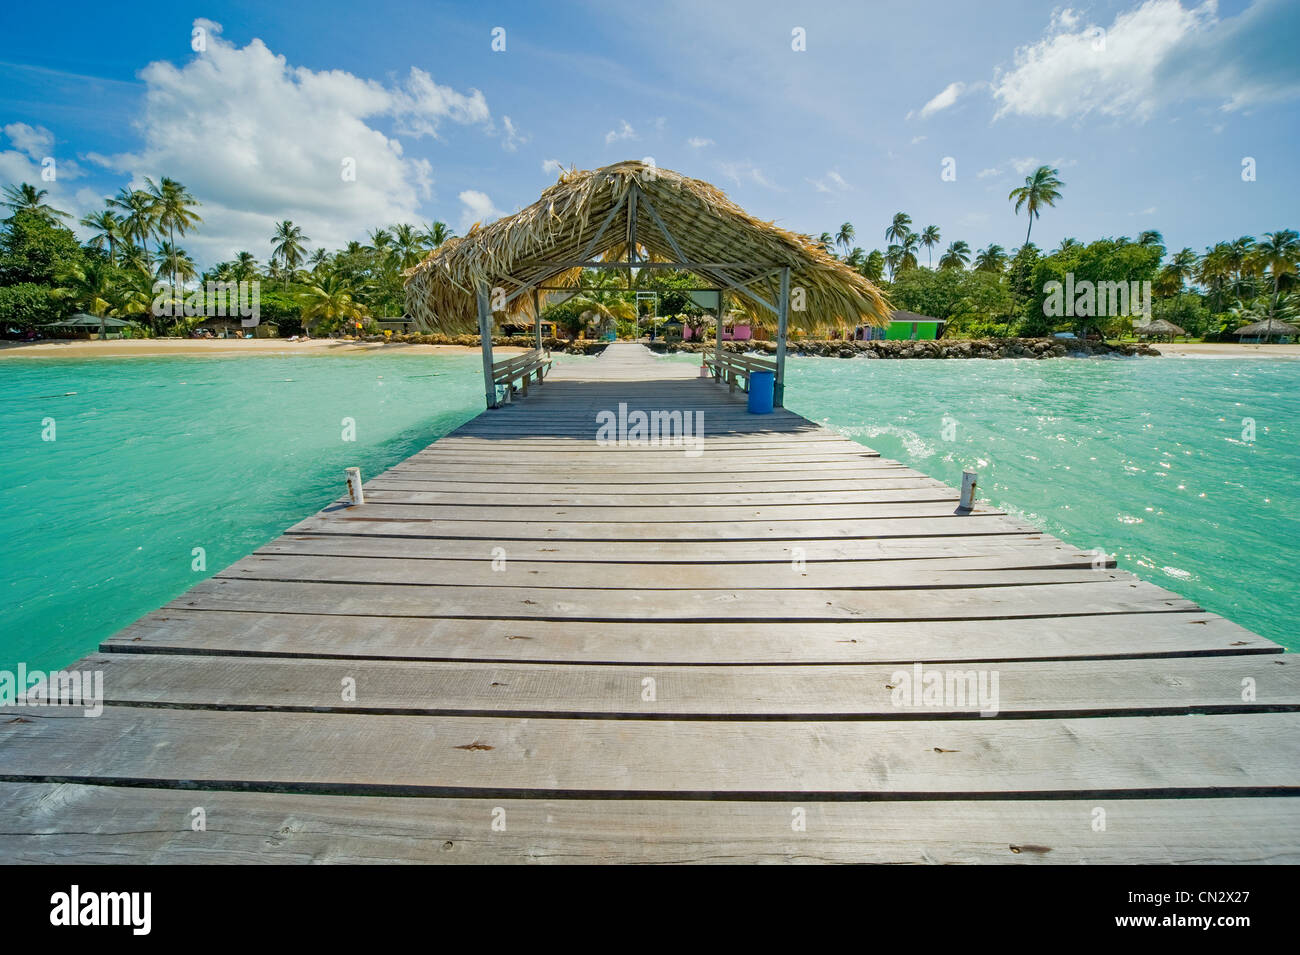 Jetty out to sea, Pigeon Point, Tobago - Stock Image